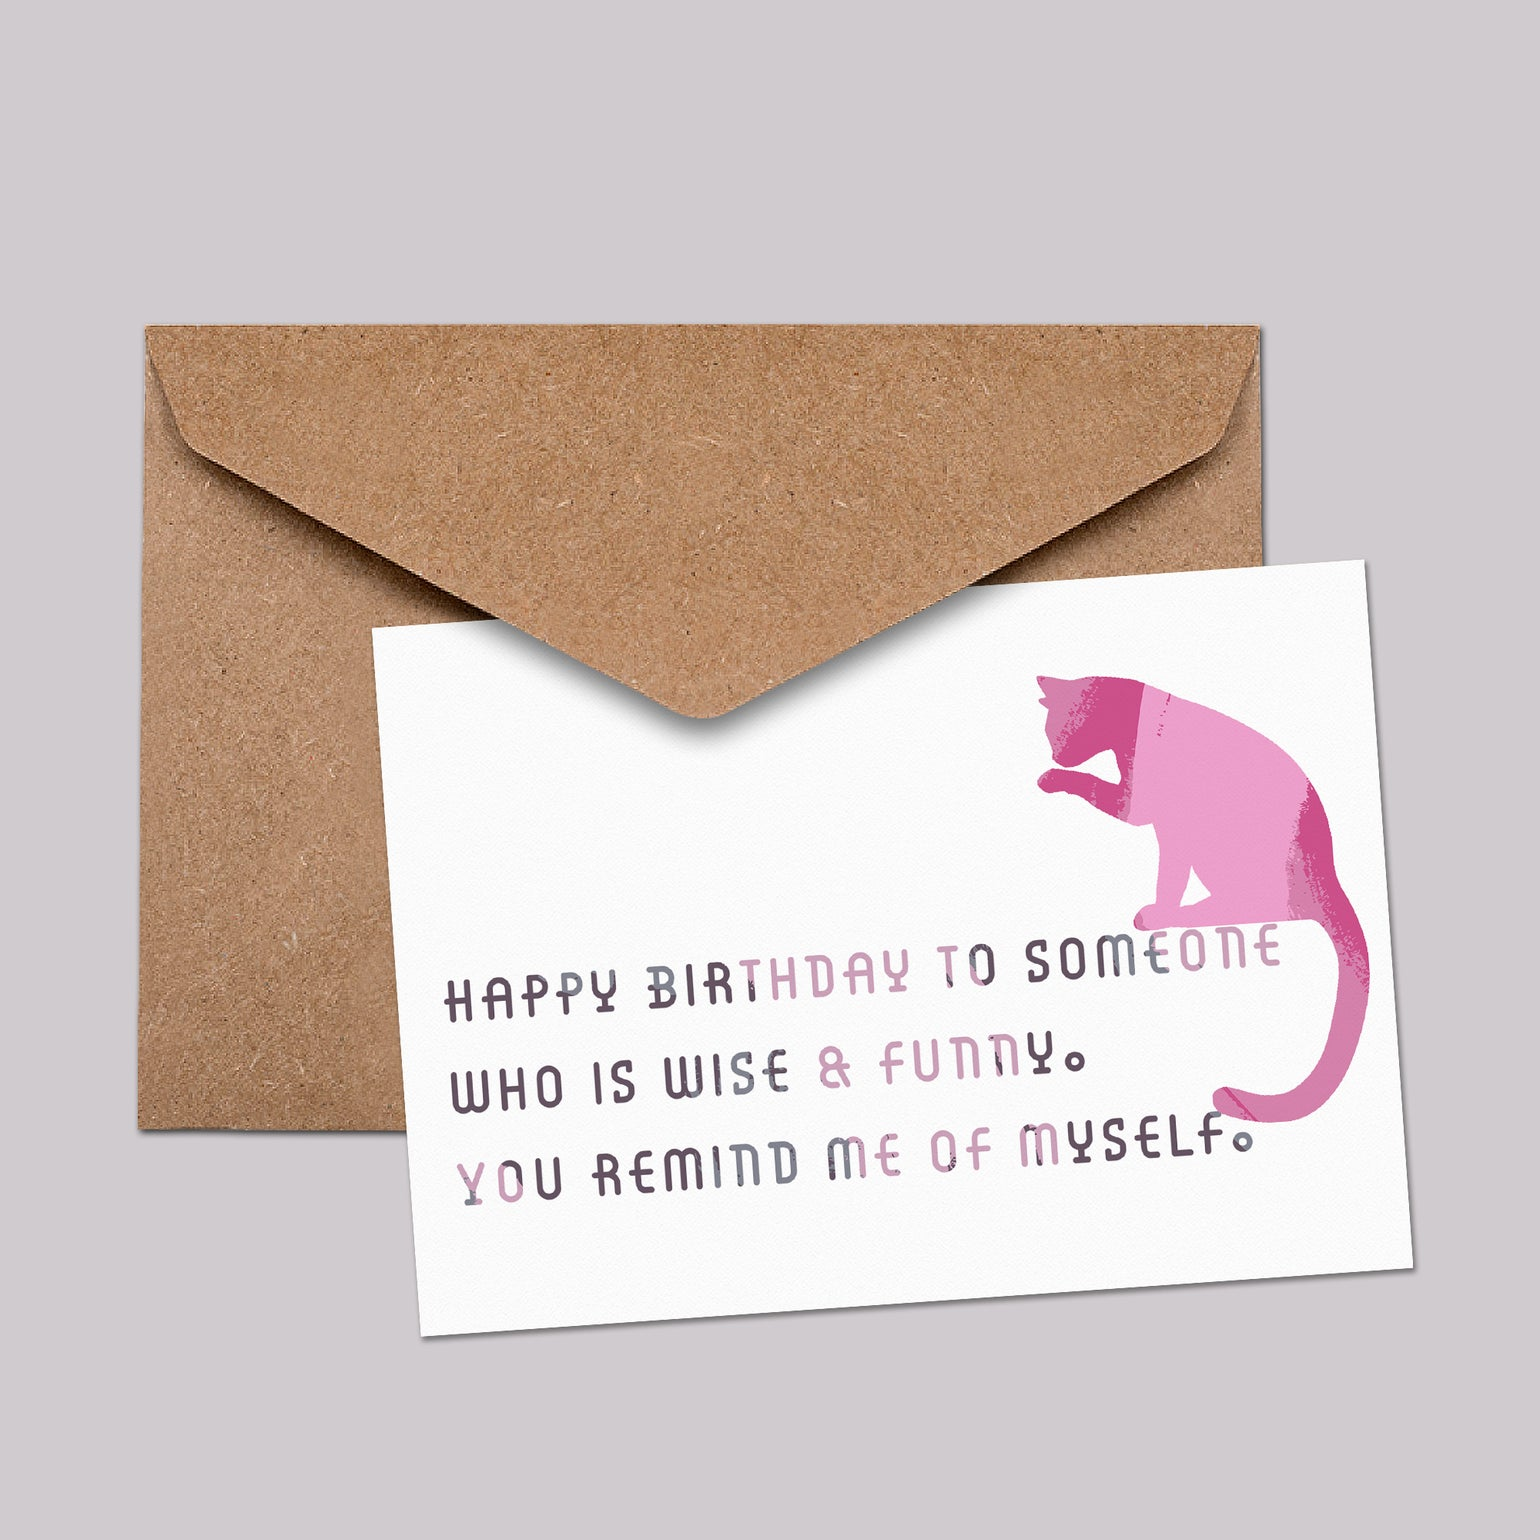 Image of Happy Birthday to someone who is wise & funny. You remind me of myself